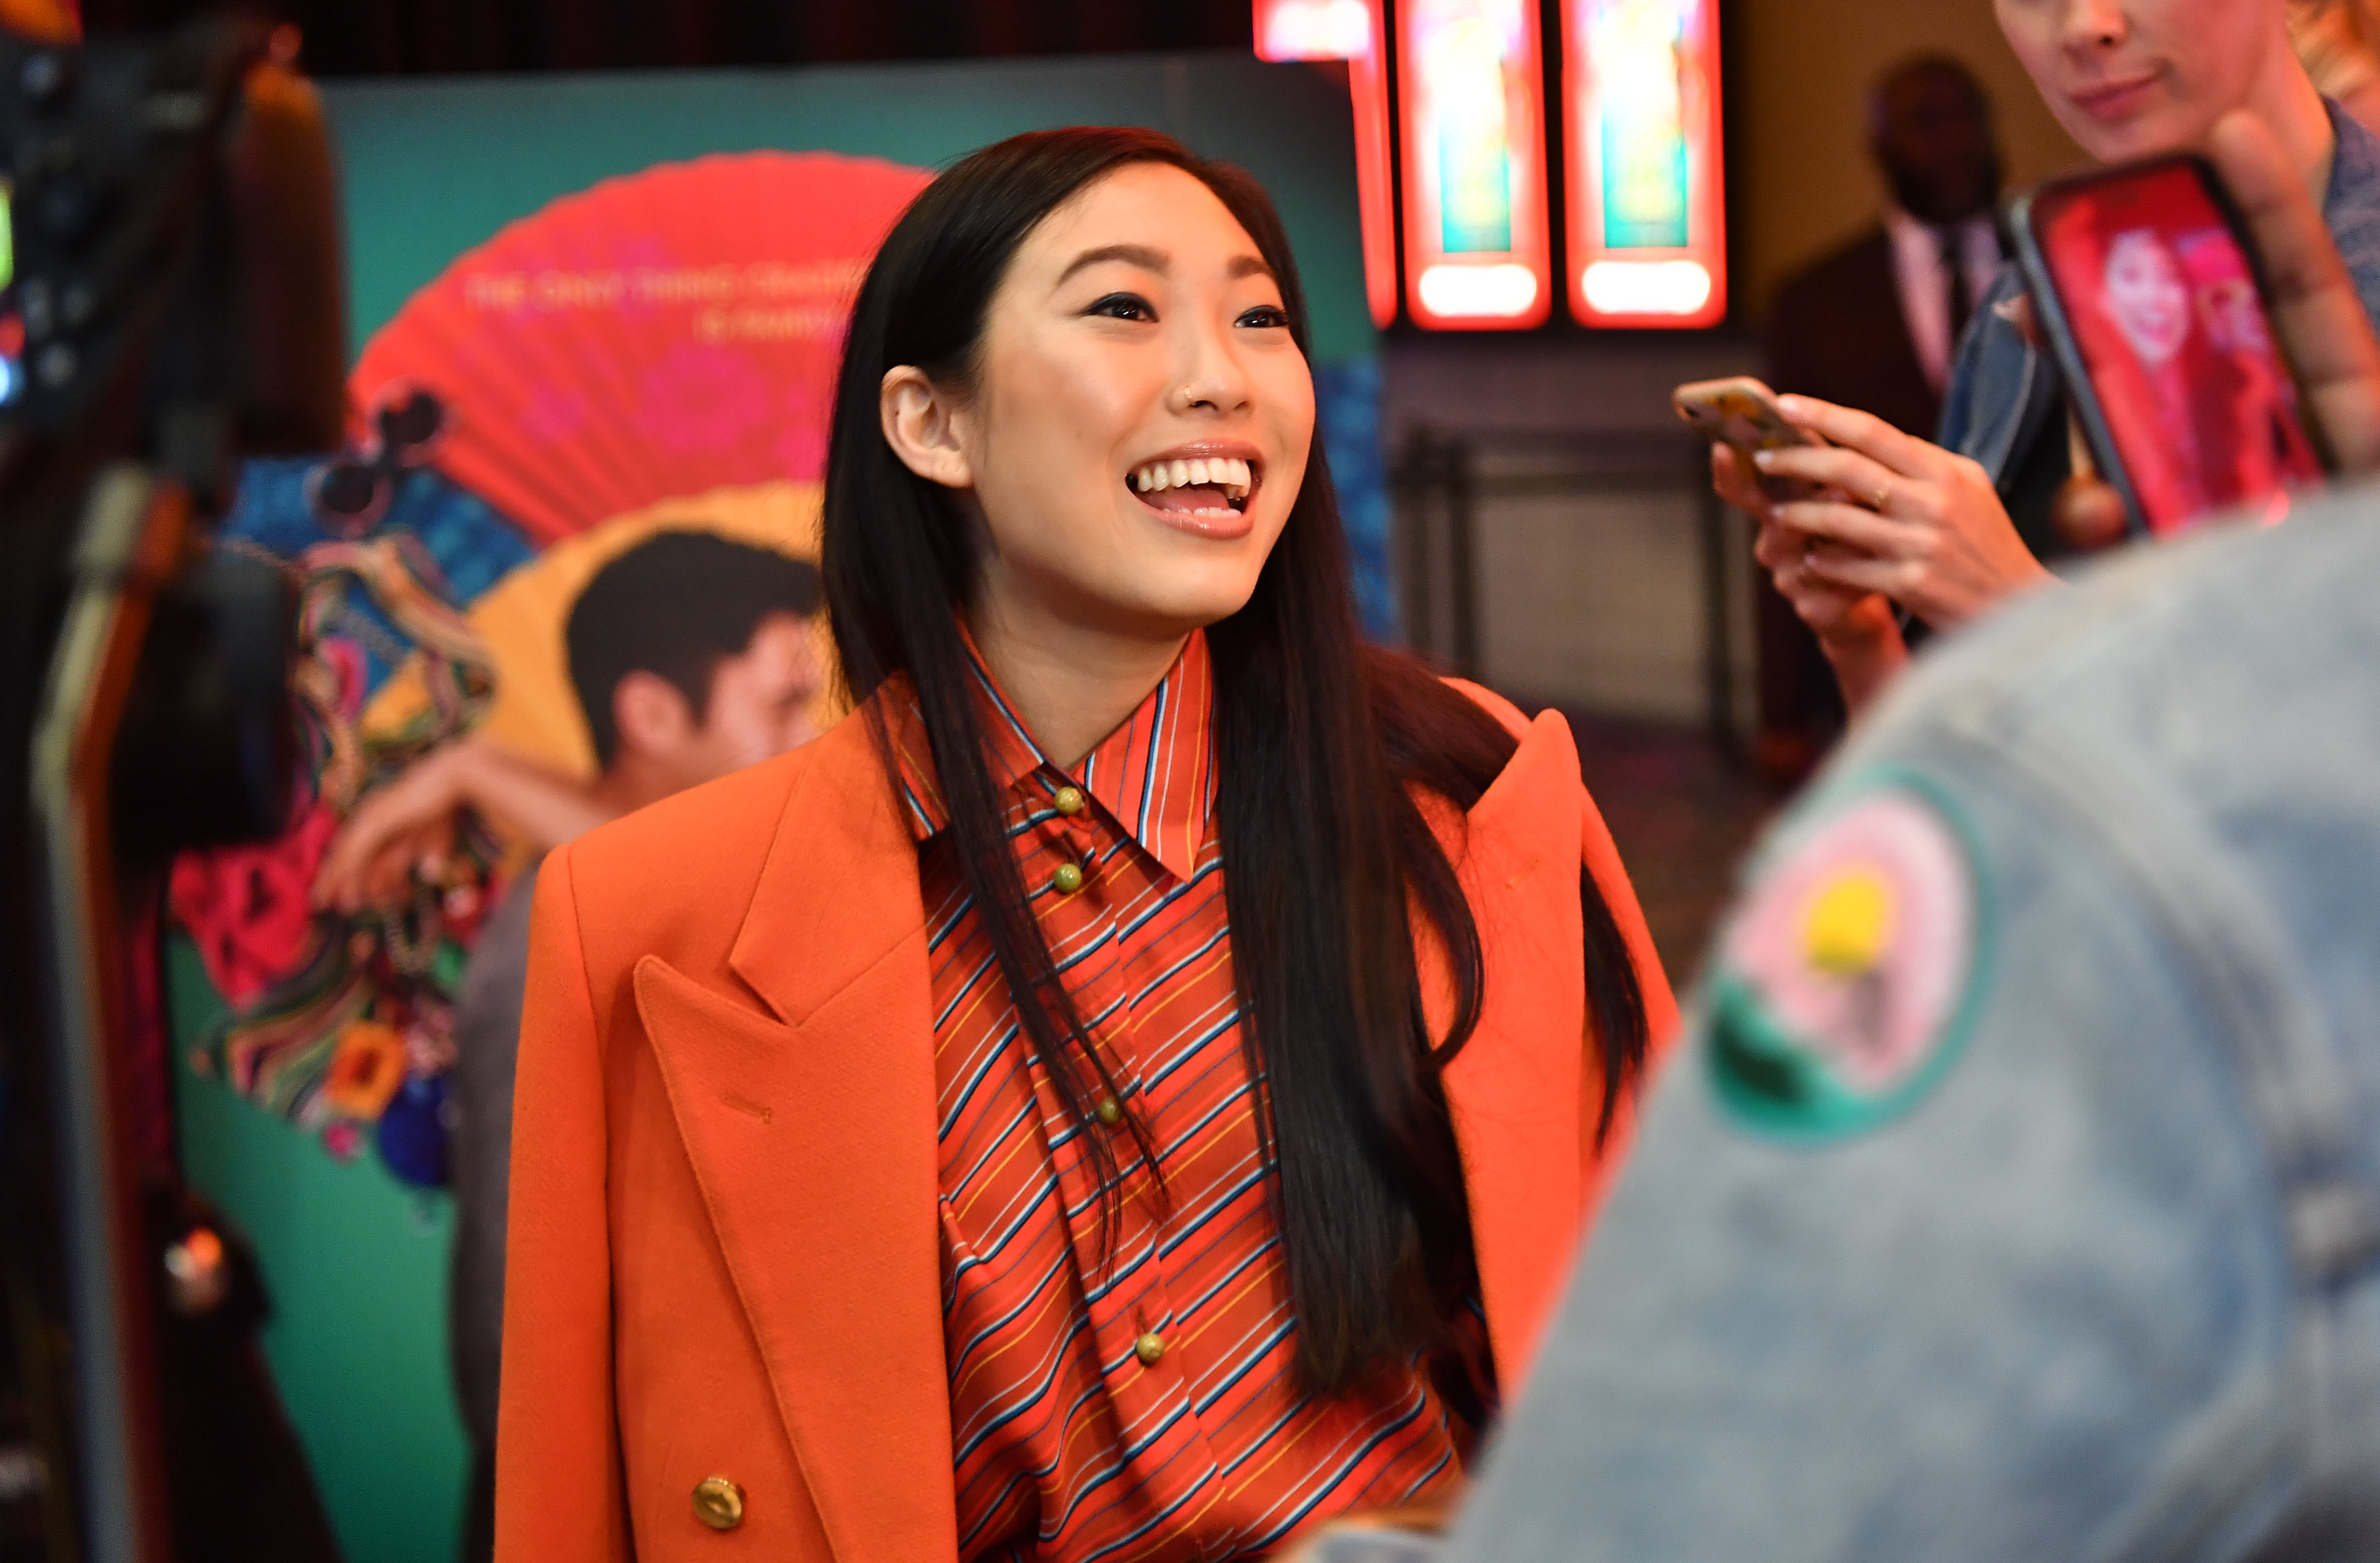 Actress Awkwafina attends 'Crazy Rich Asians' Atlanta Red Carpet Screening at Regal Atlantic Station on August 2, 2018 in Atlanta, Georgia.